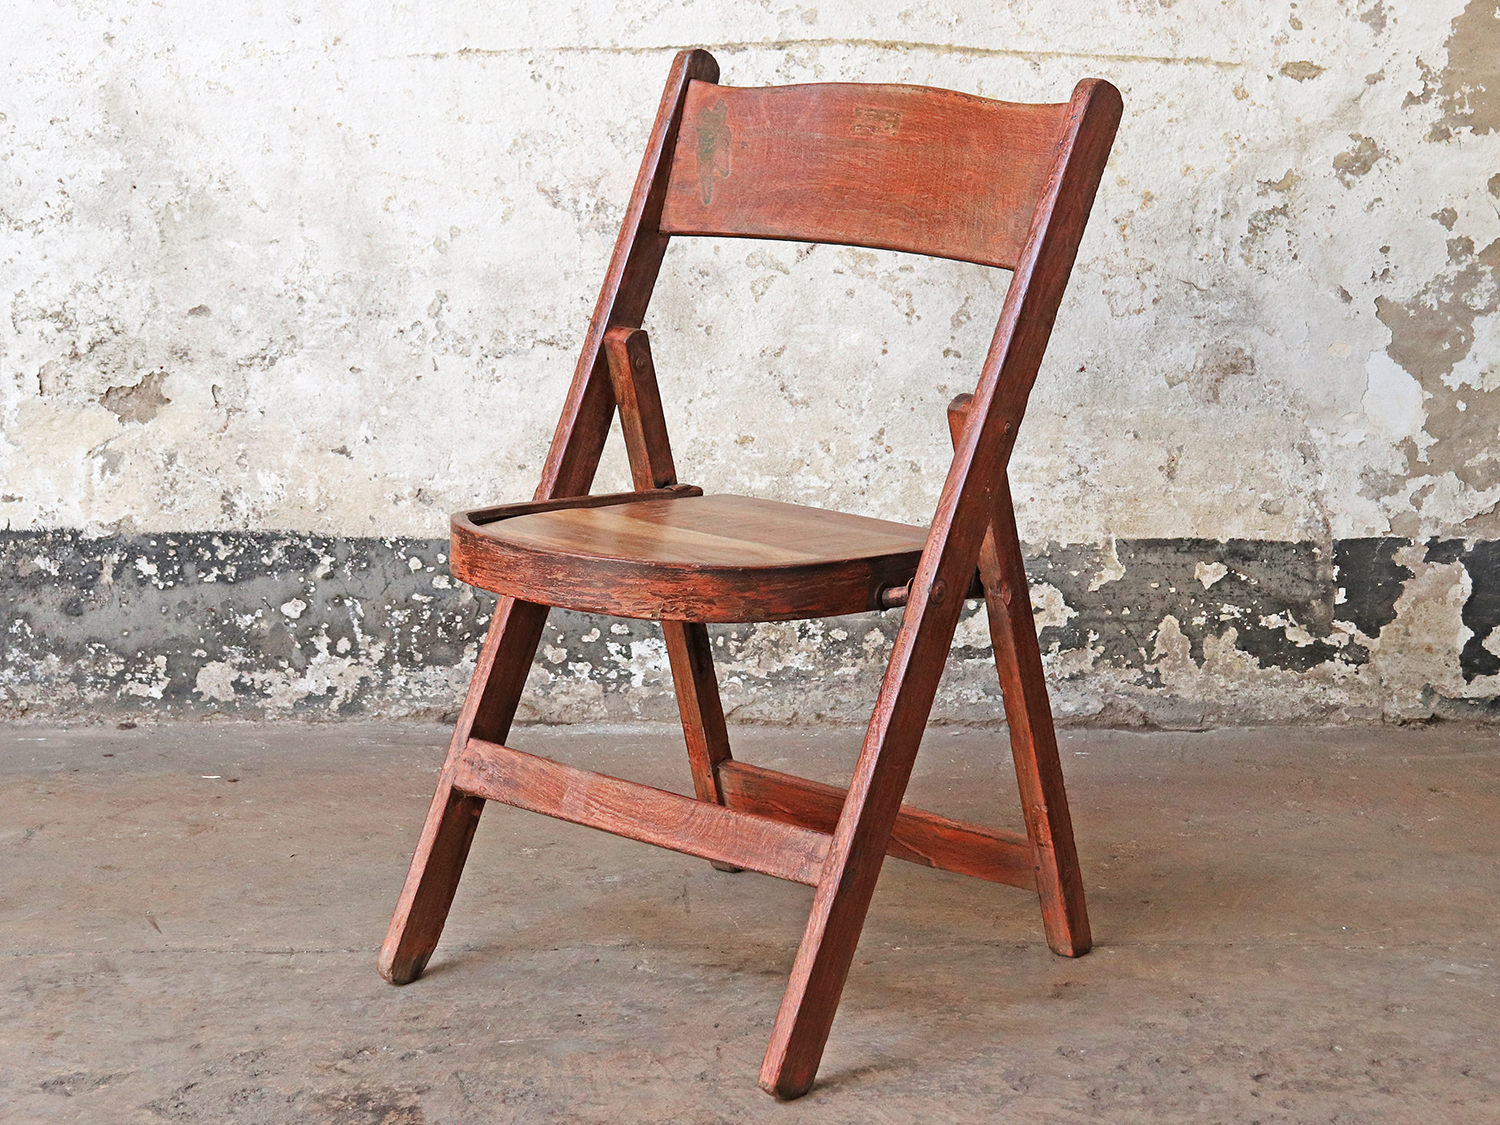 Wooden Folding chairs suitable for outside seating